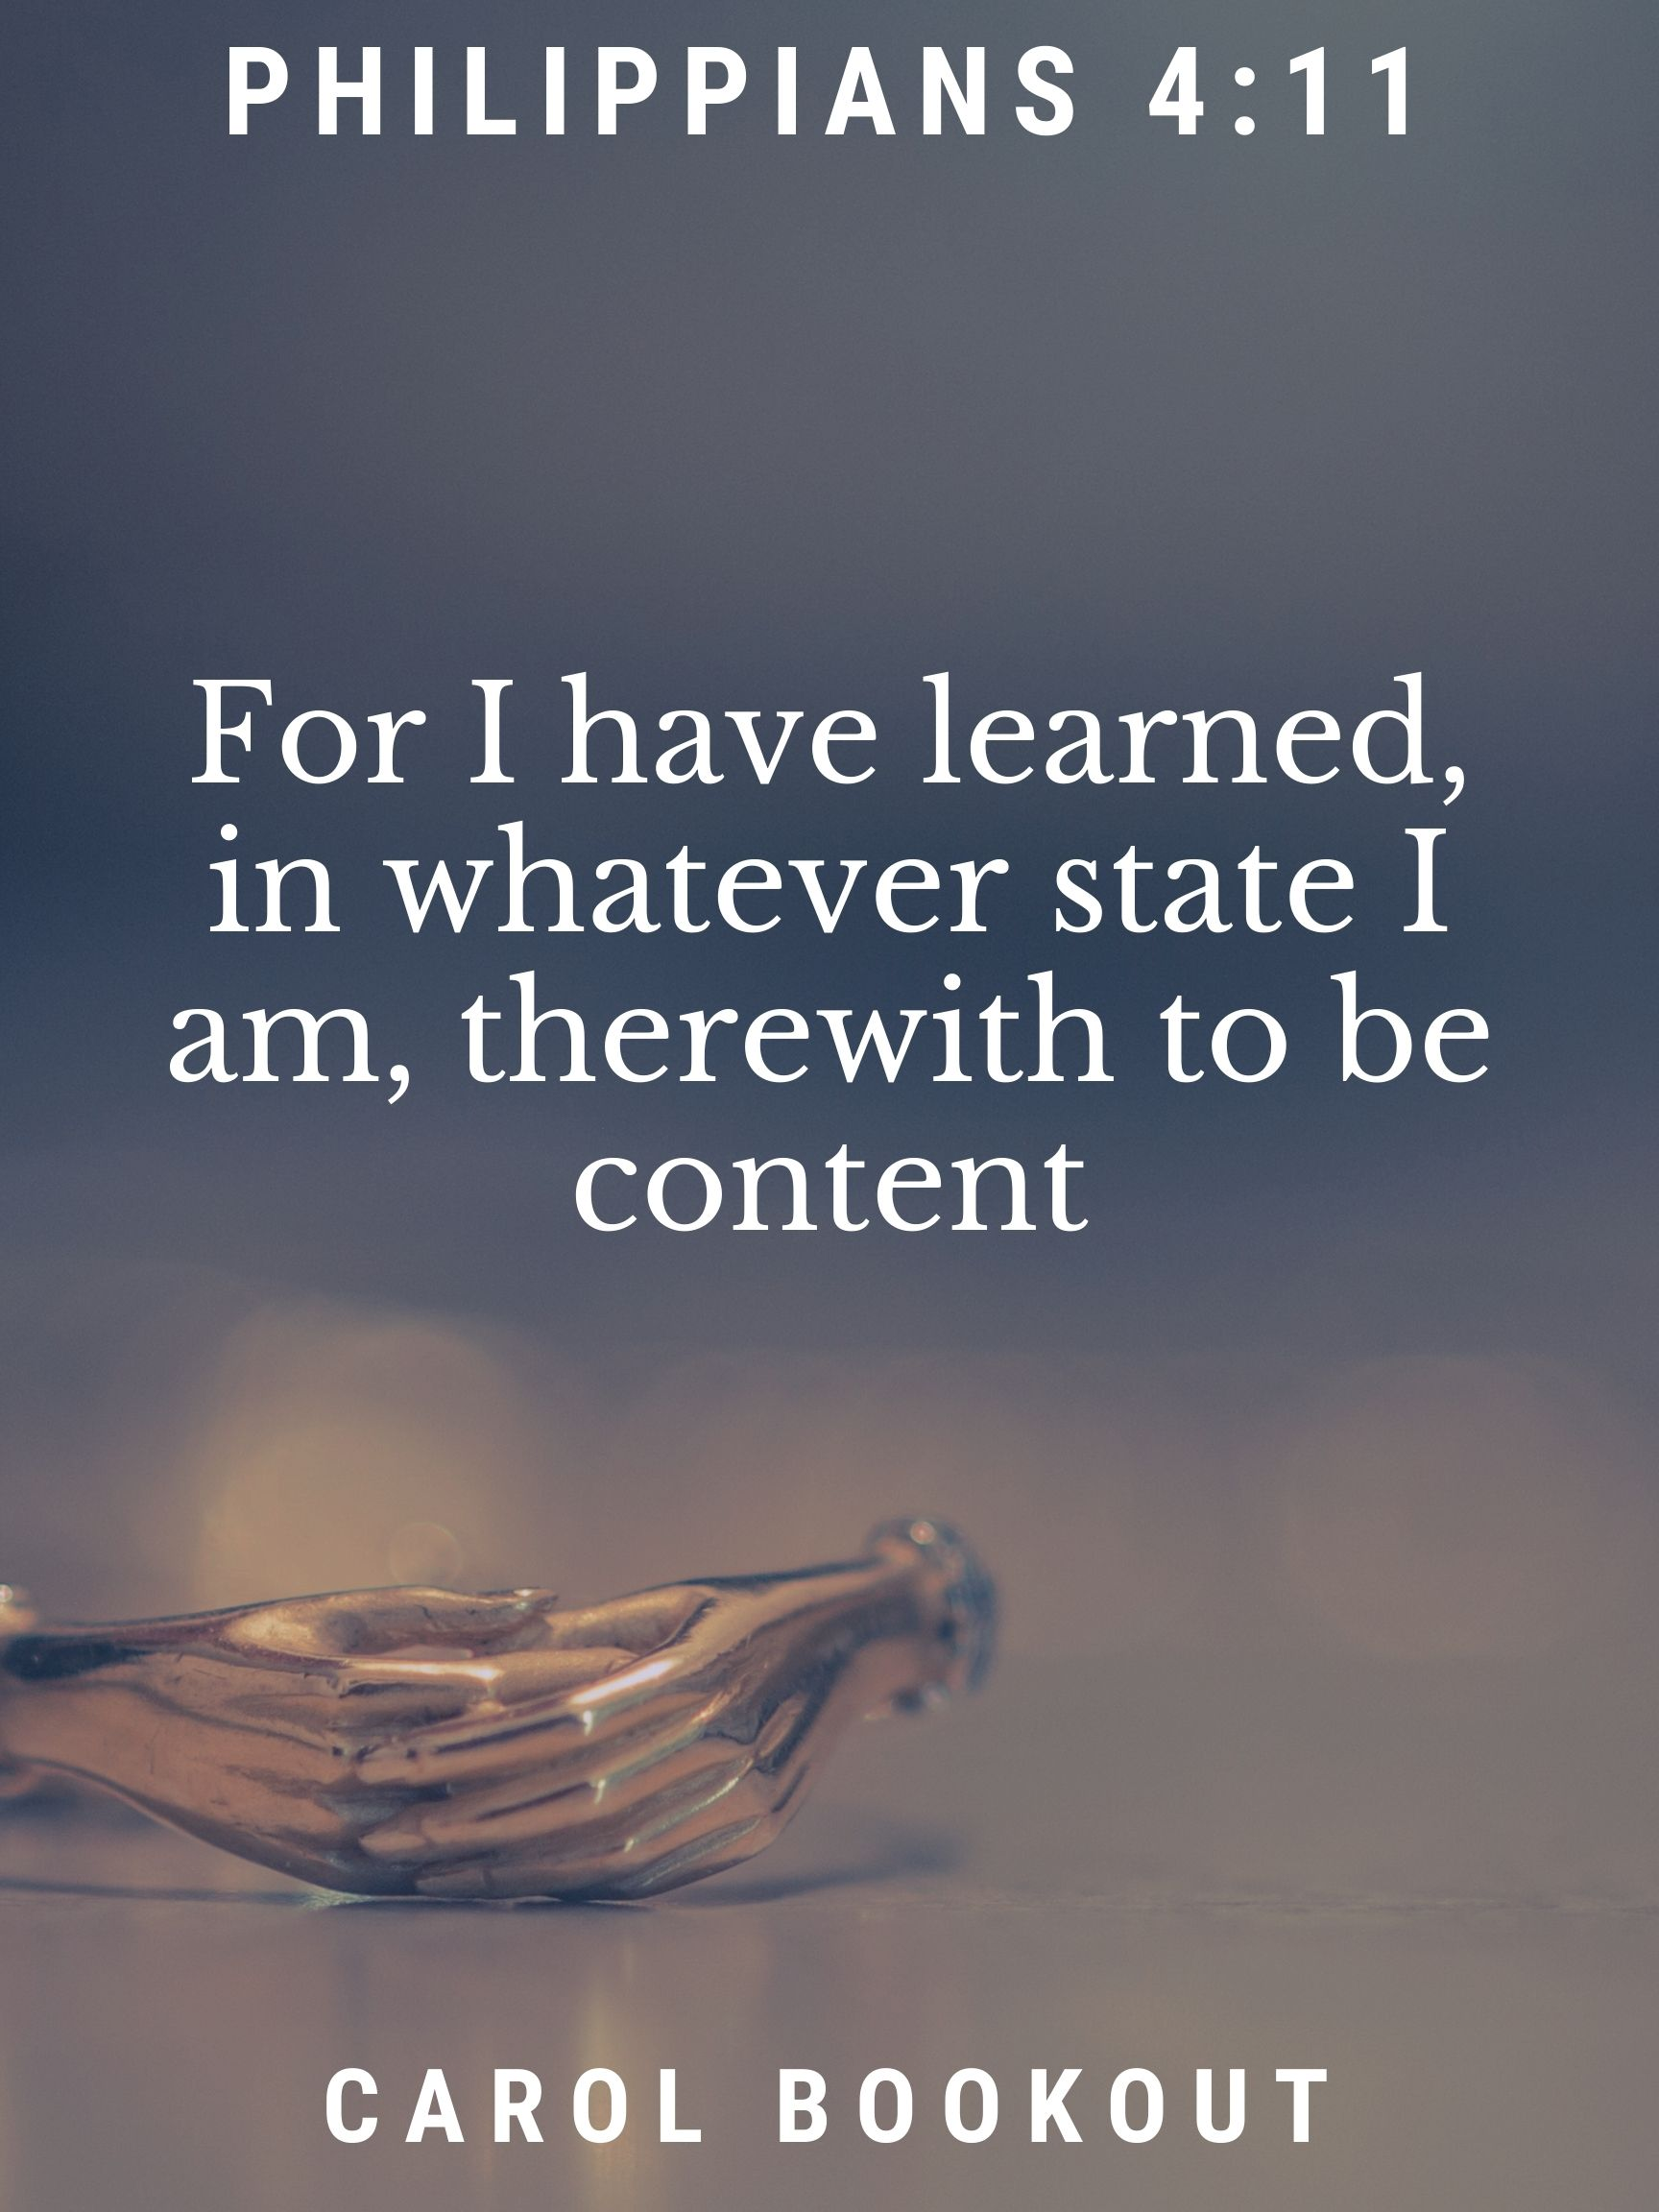 Philippians 4:11 For I have learned, in whatever state I am, therewith to be content. Carol Bookout